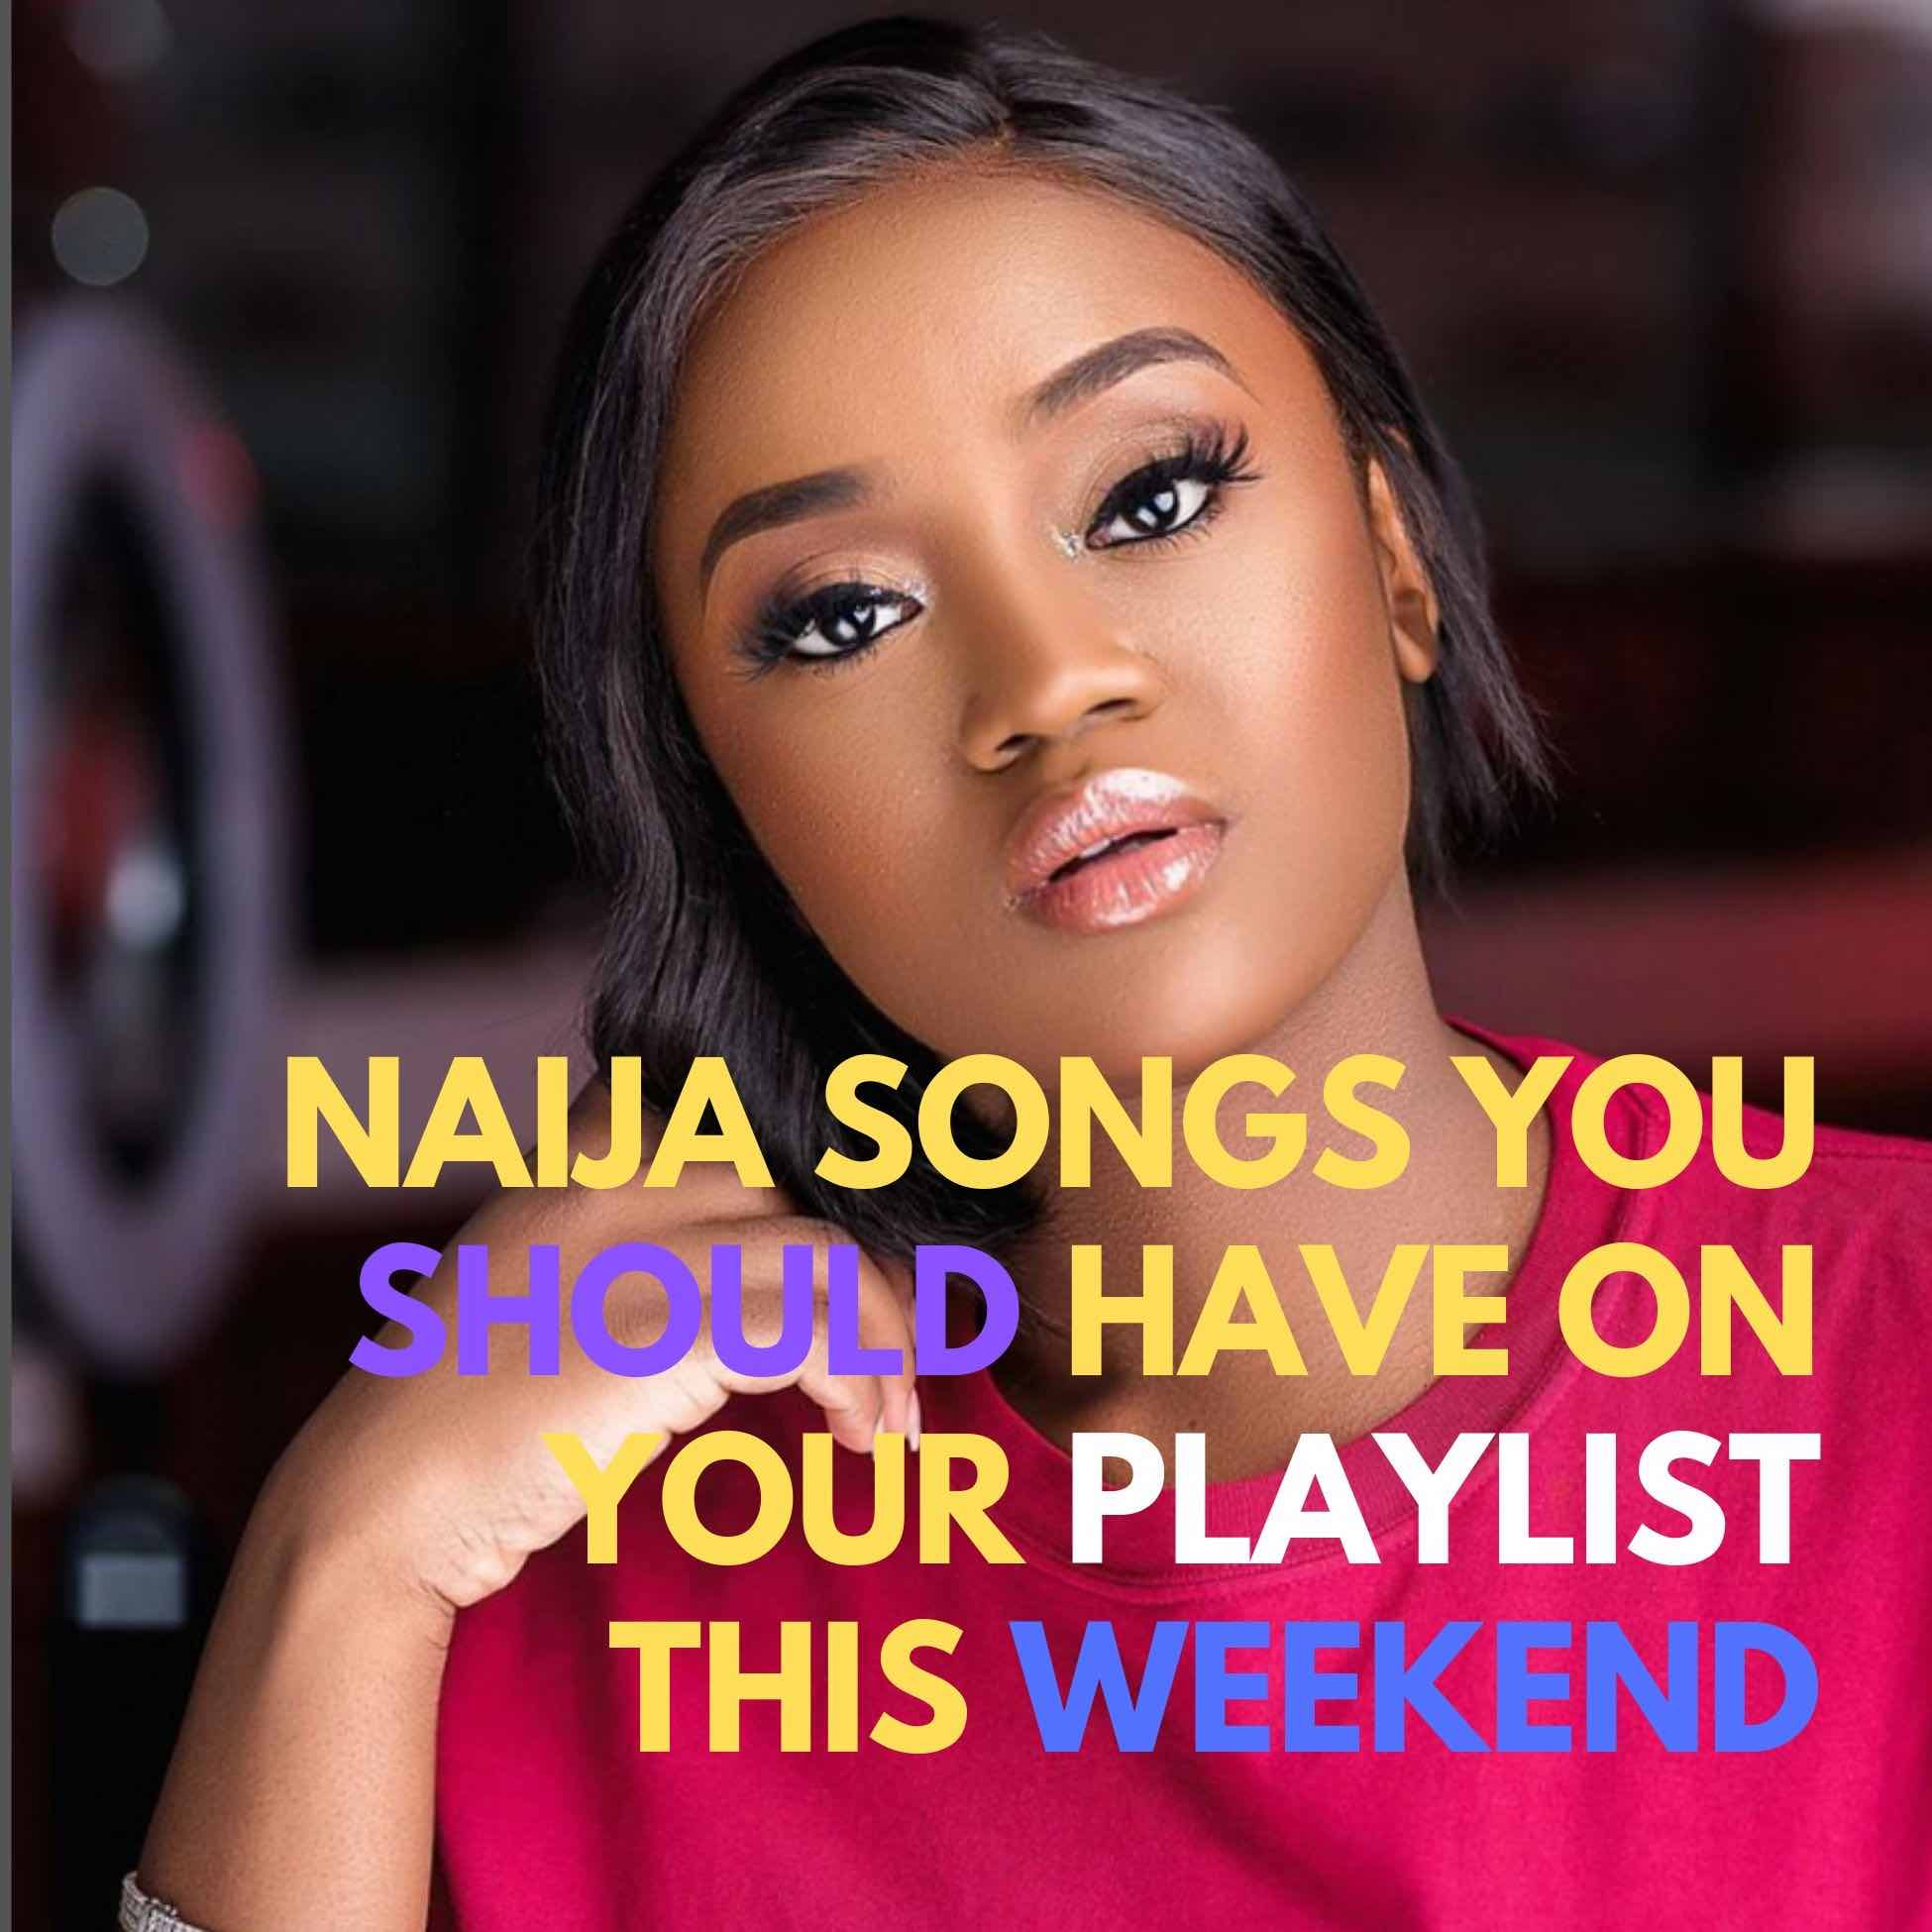 Naija Songs You Should Have On Your Playlist This Weekend